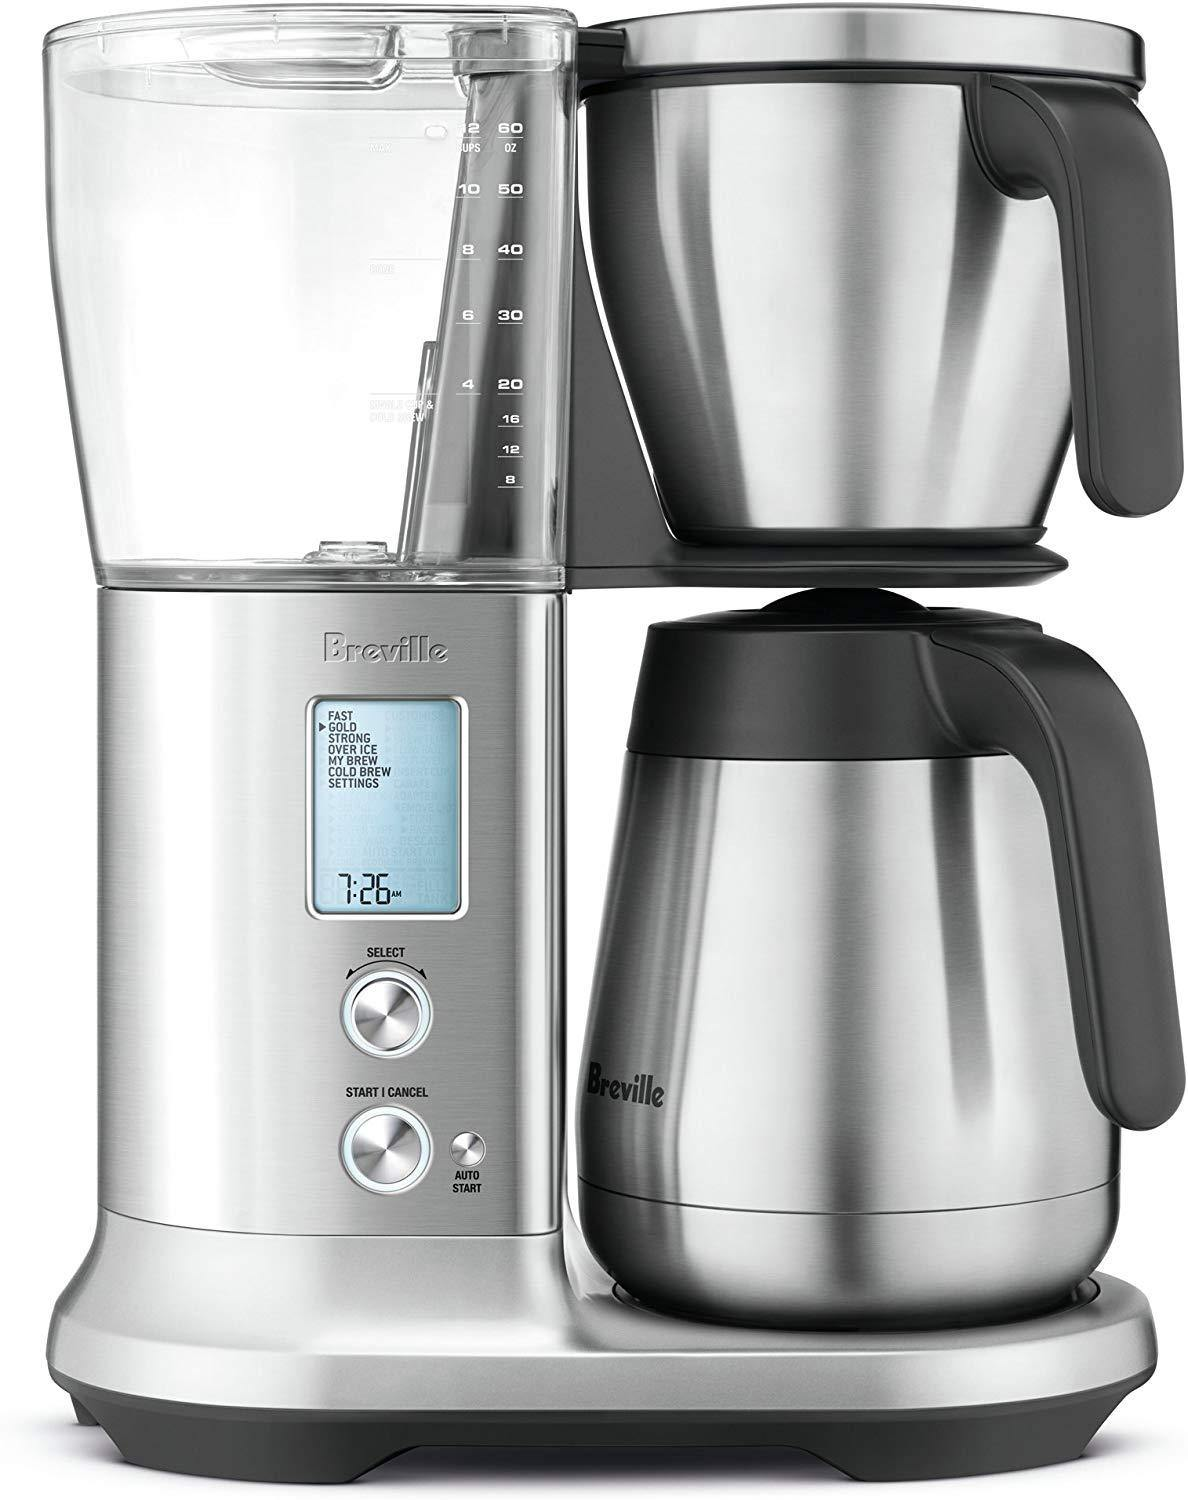 Breville Precision Brewer with Thermal Carafe